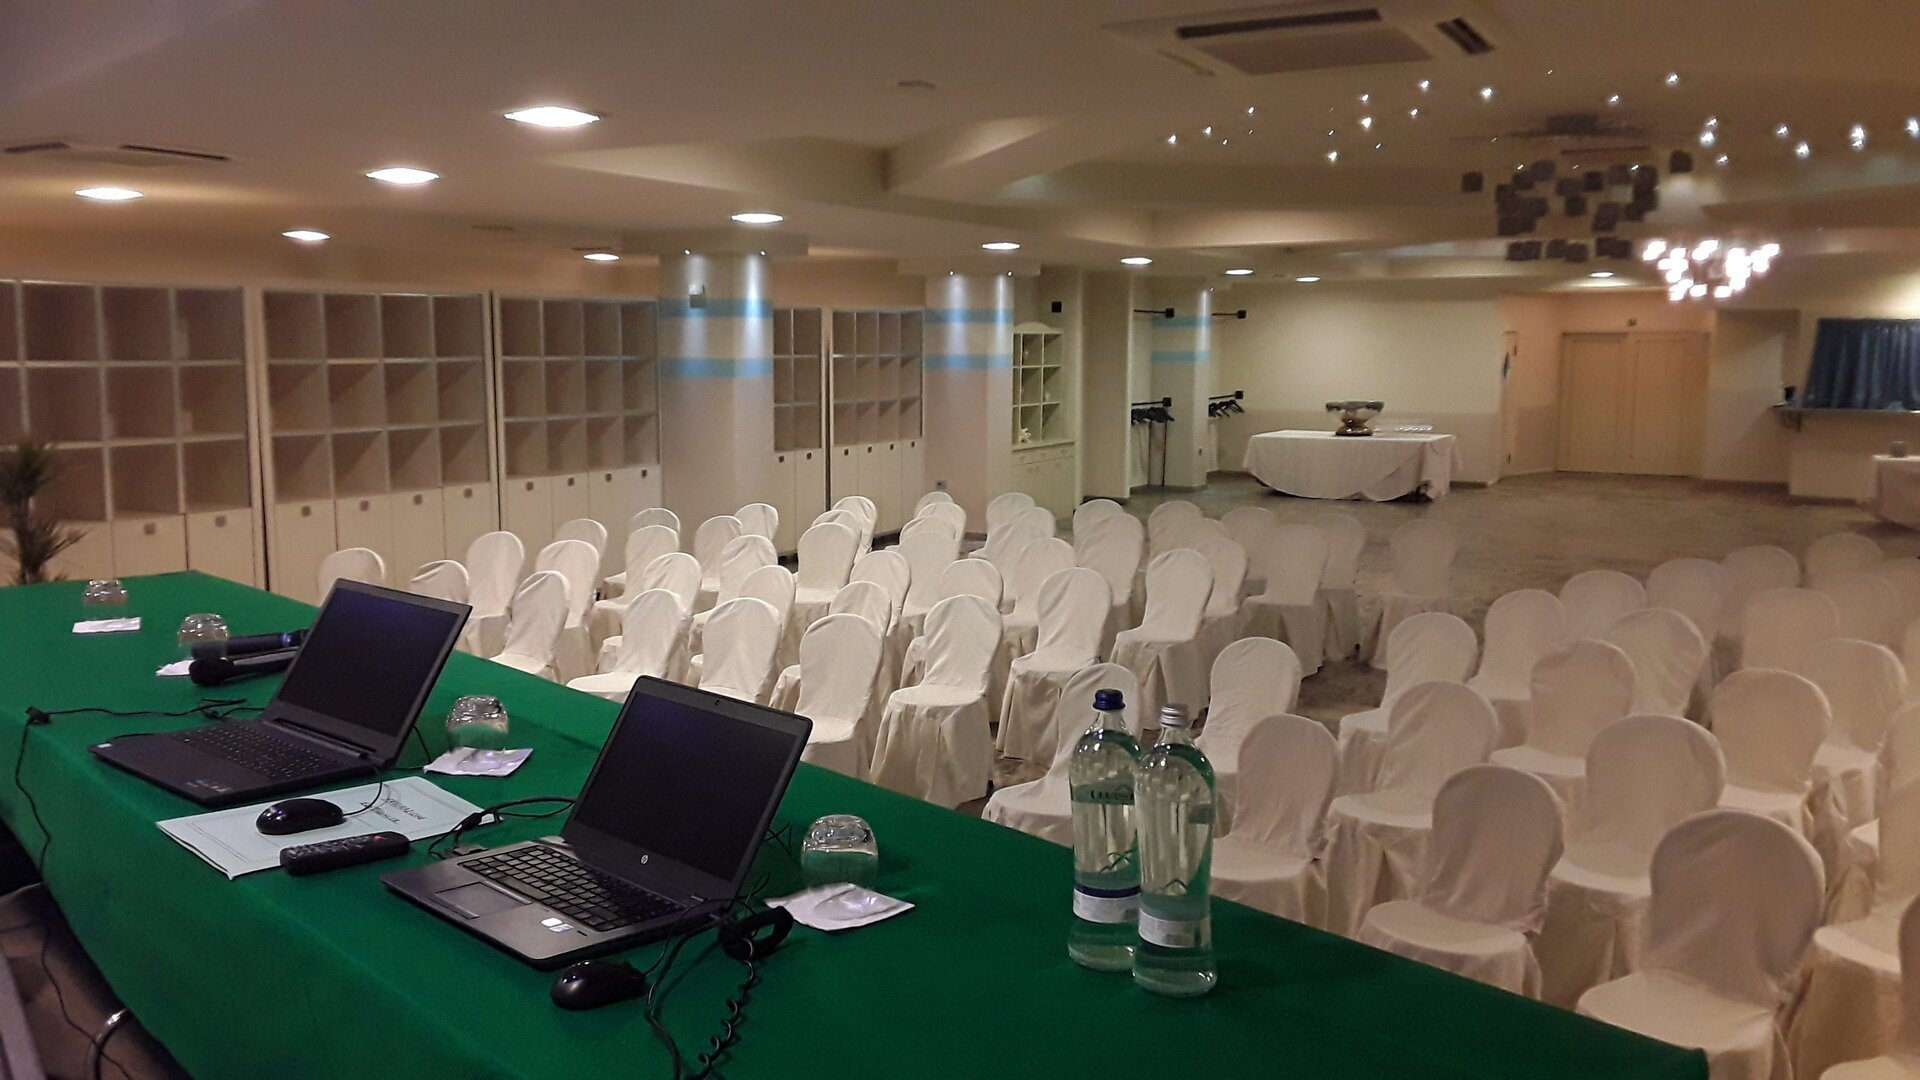 Meeting and conference rooms at Hotel Saligari